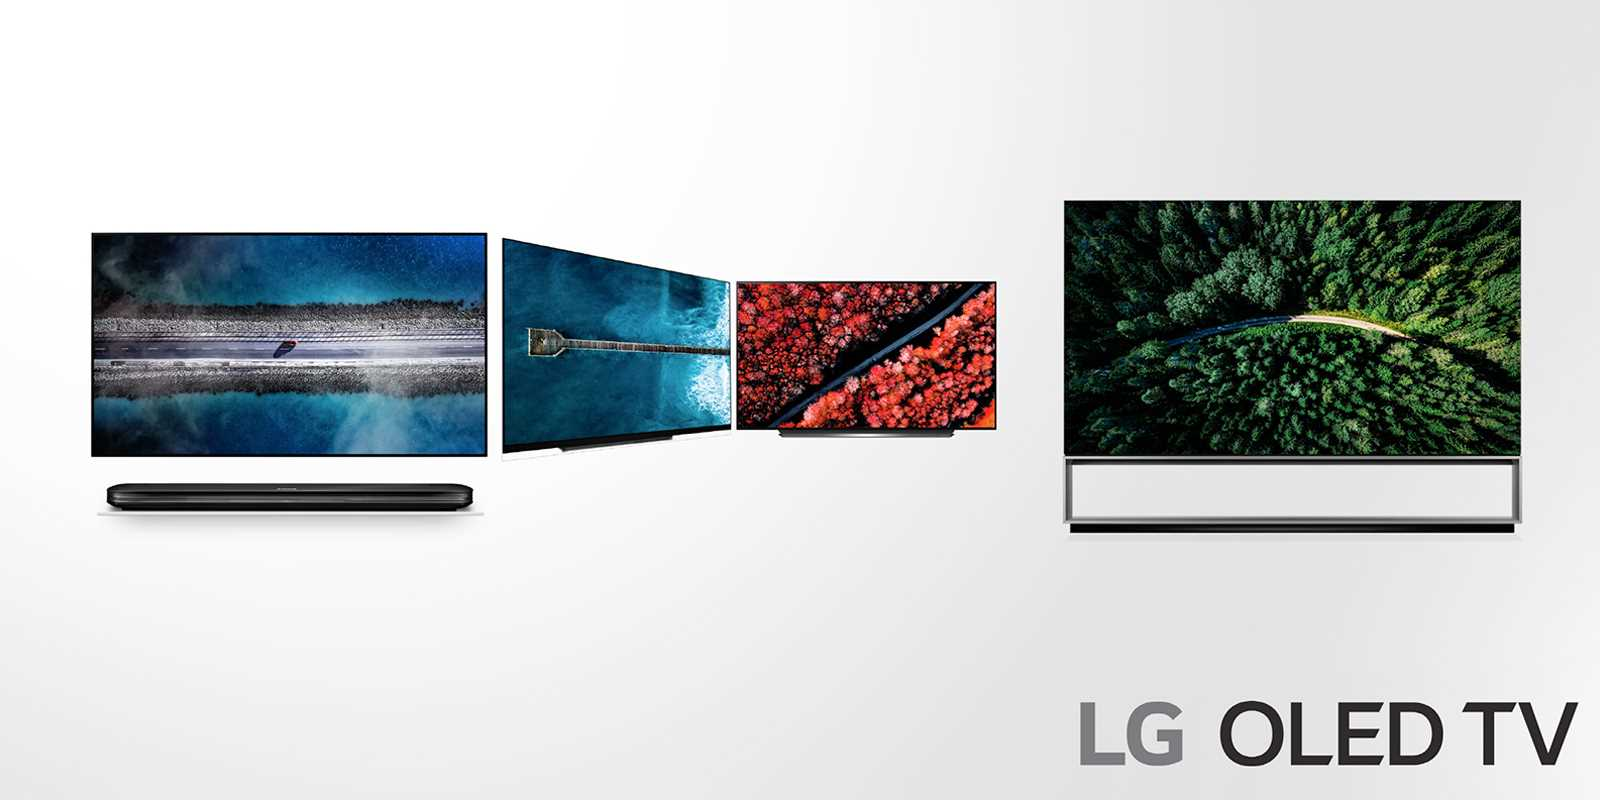 The LG SIGNATURE OLED TV R is another notch in LG's evolution of OLED - with the technology changing the viewing experience as we know it | More at LG MAGAZINE